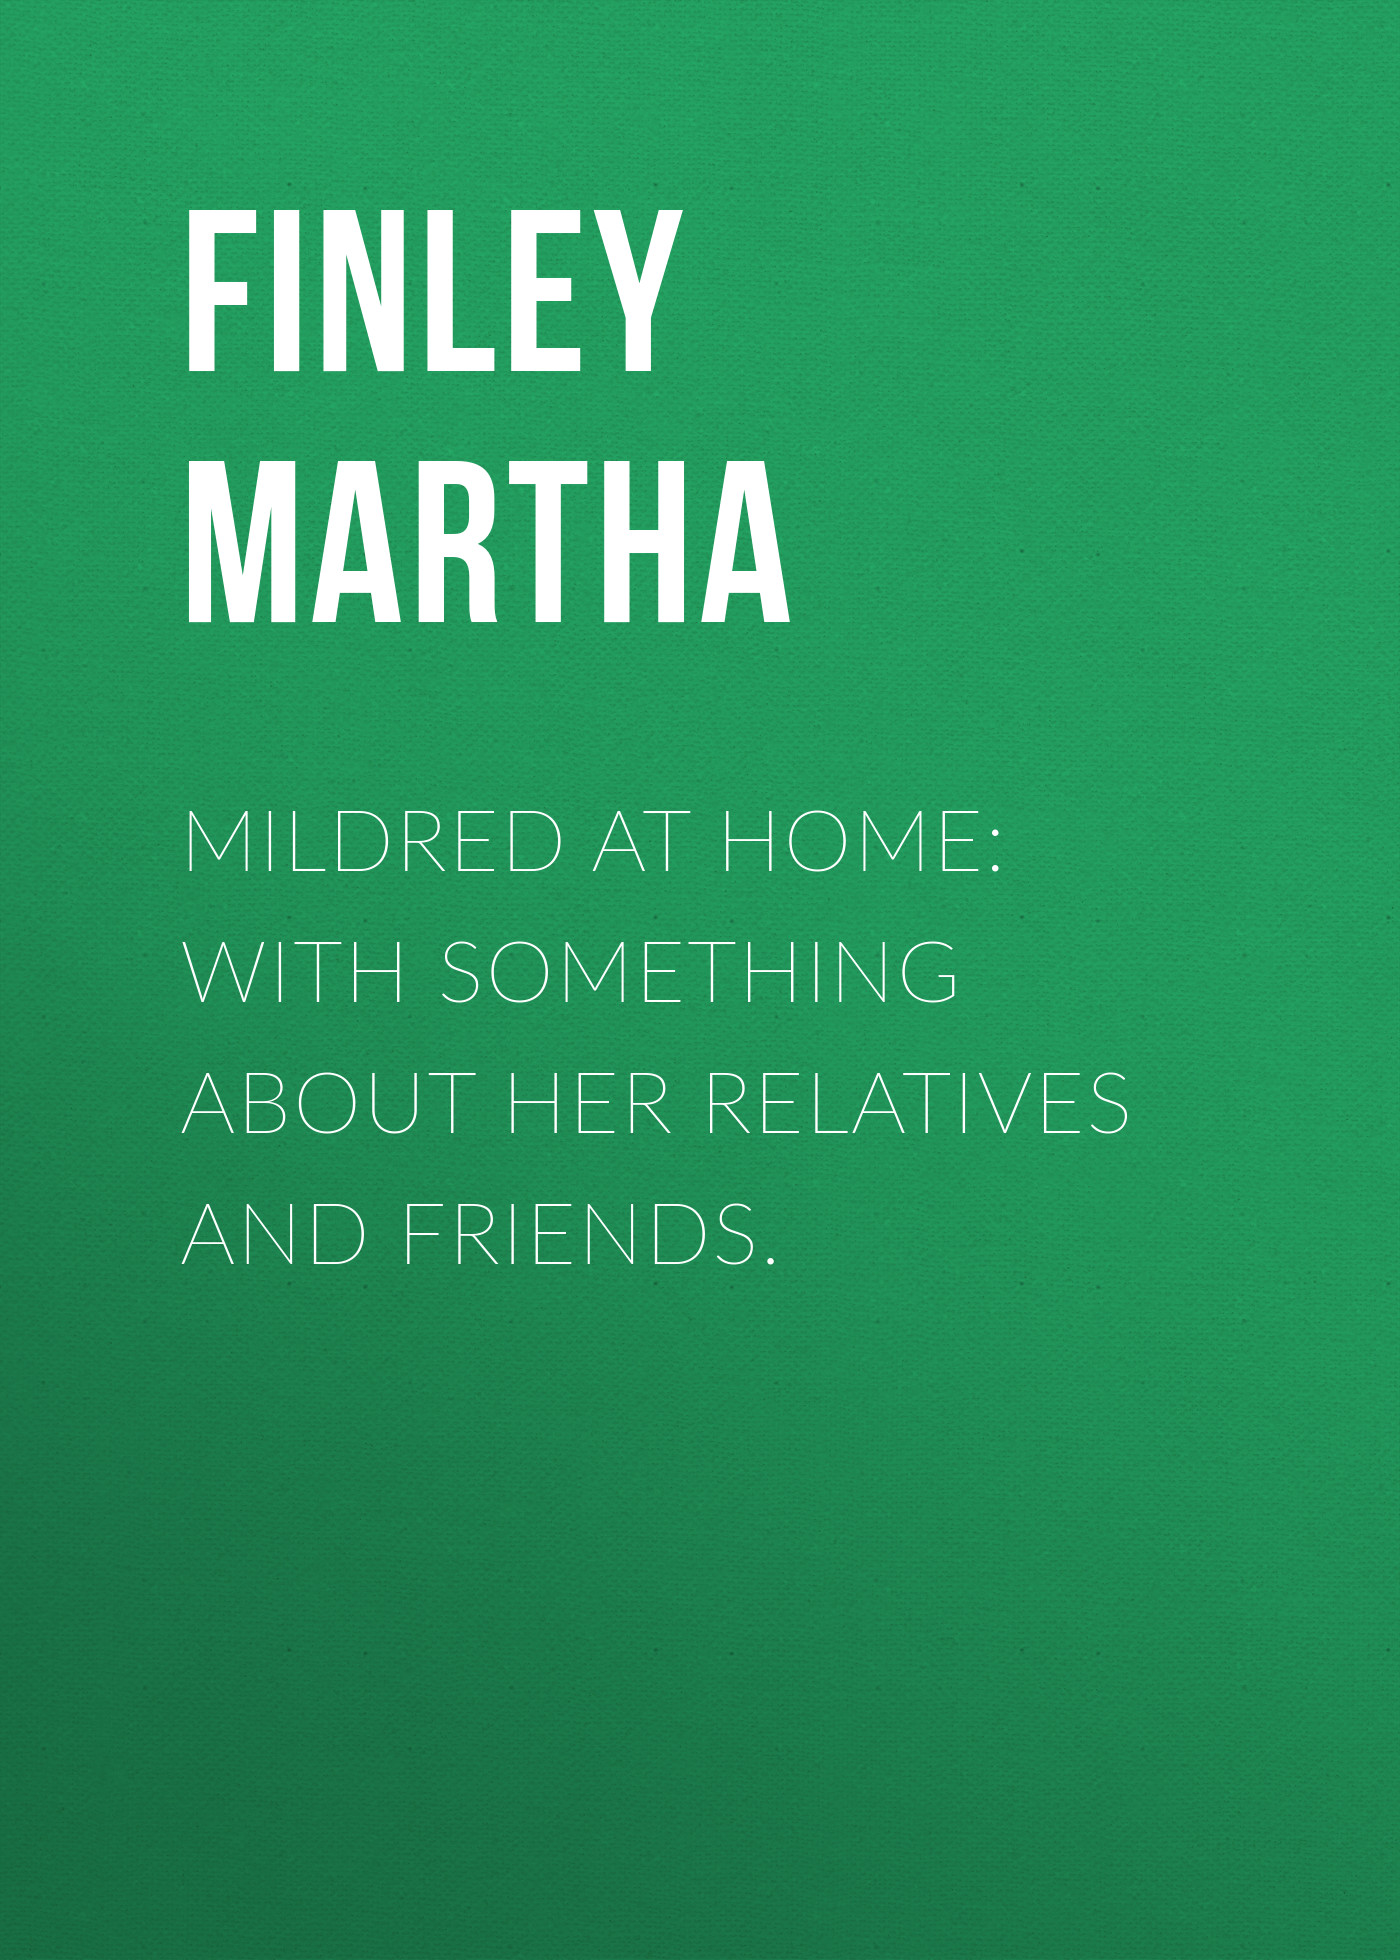 лучшая цена Finley Martha Mildred at Home: With Something About Her Relatives and Friends.